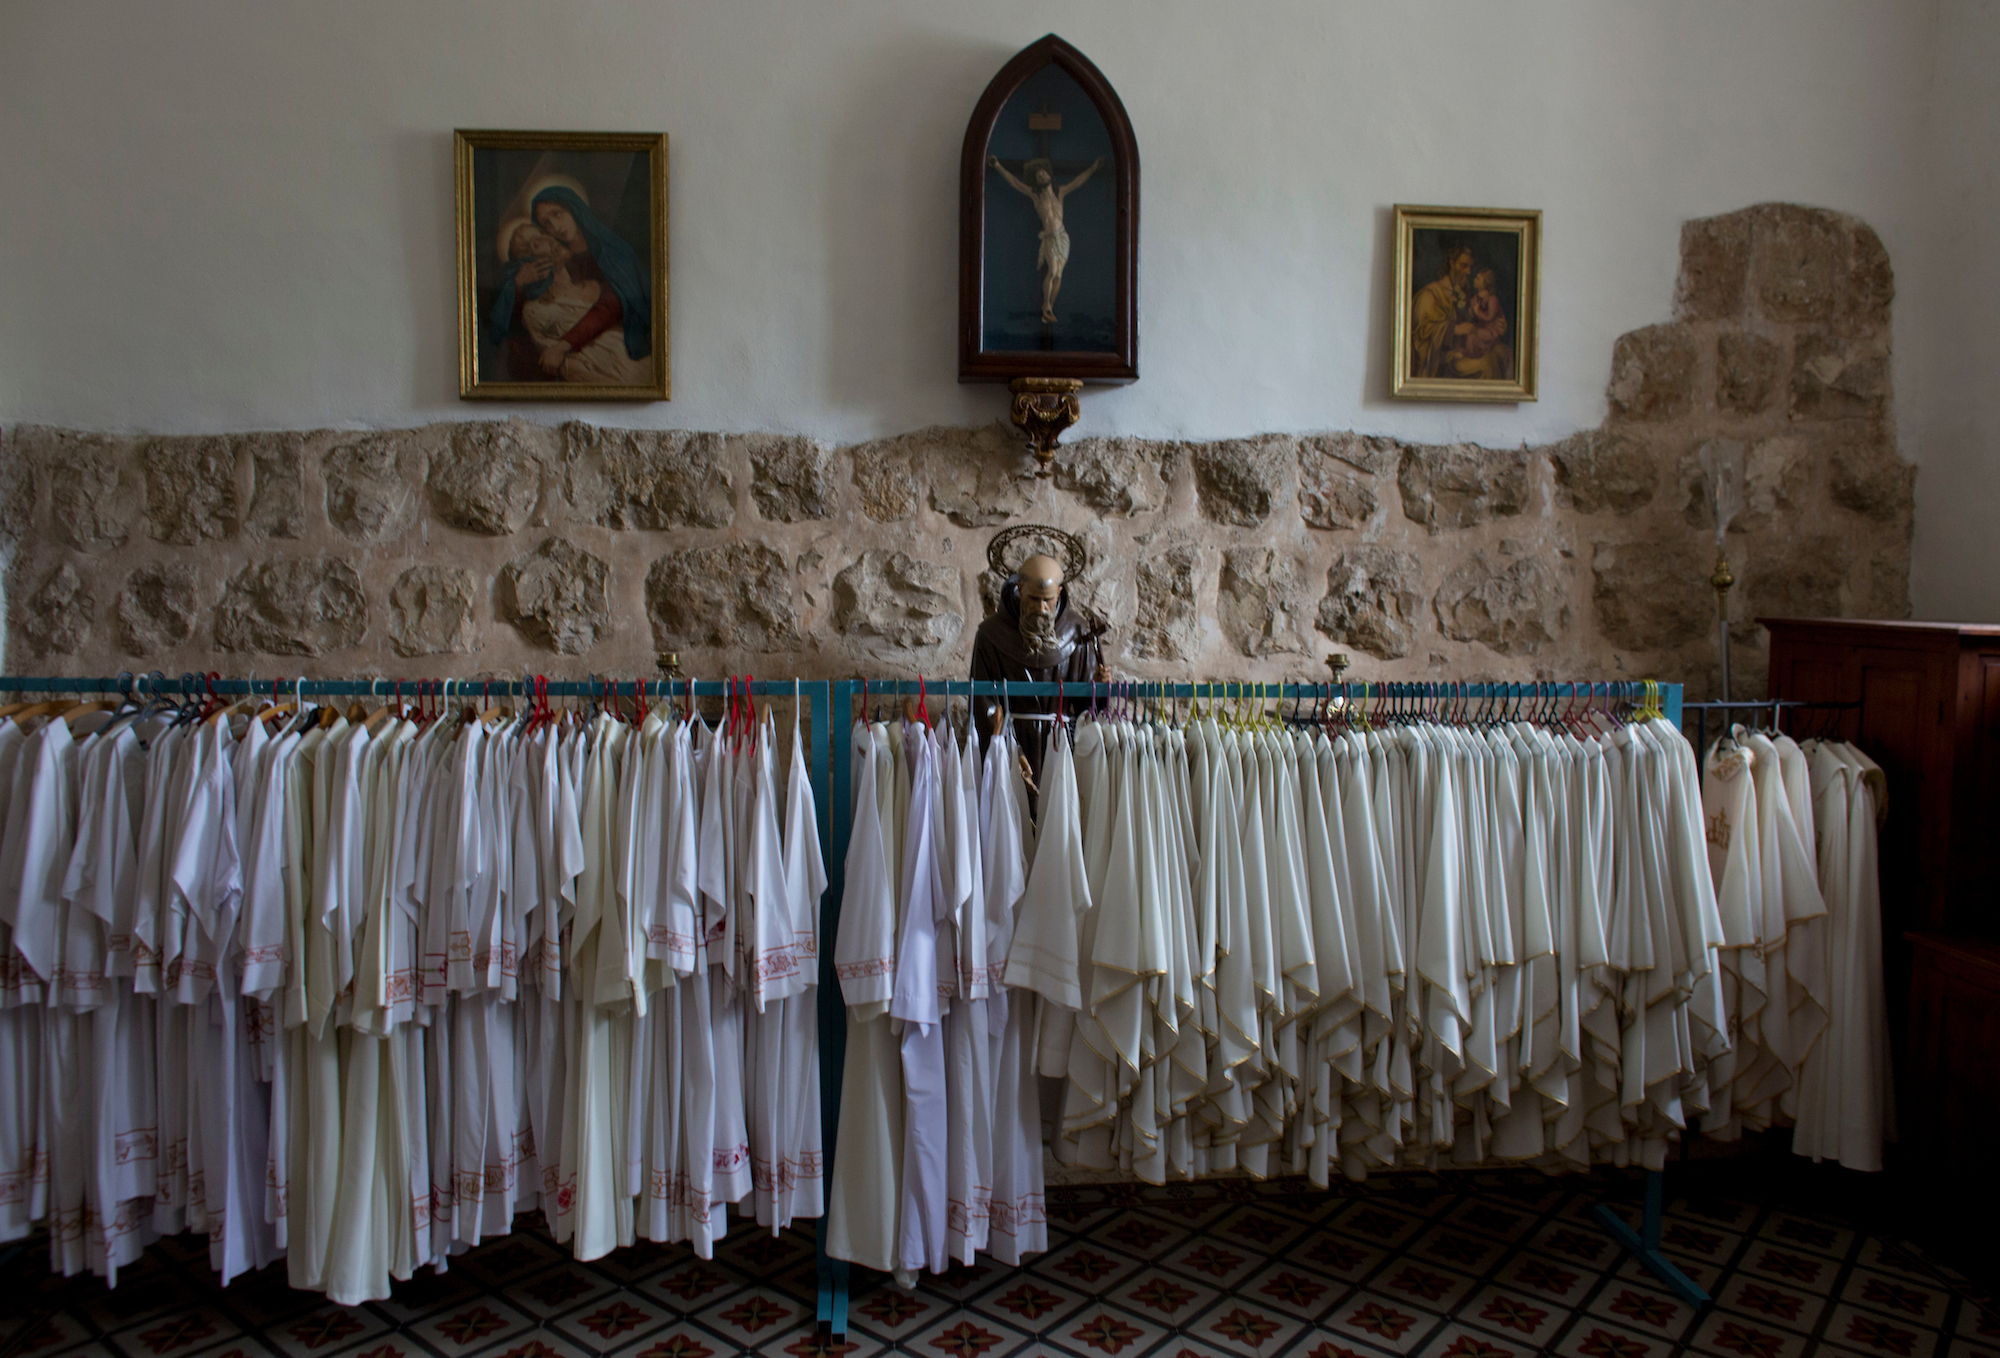 Priestly robes and a statue of Saint Francis are seen in the sacristy of the Franciscan Church of Emmaus in the West Bank village of El Qubeibeh, also known as Emmaus. On Monday April 17, 2017, over a thousand Christian pilgrims flocked to a Mass that celebrates the biblical story of The Road to Emmaus. (Photo by Heidi Levine/GroundTruth)